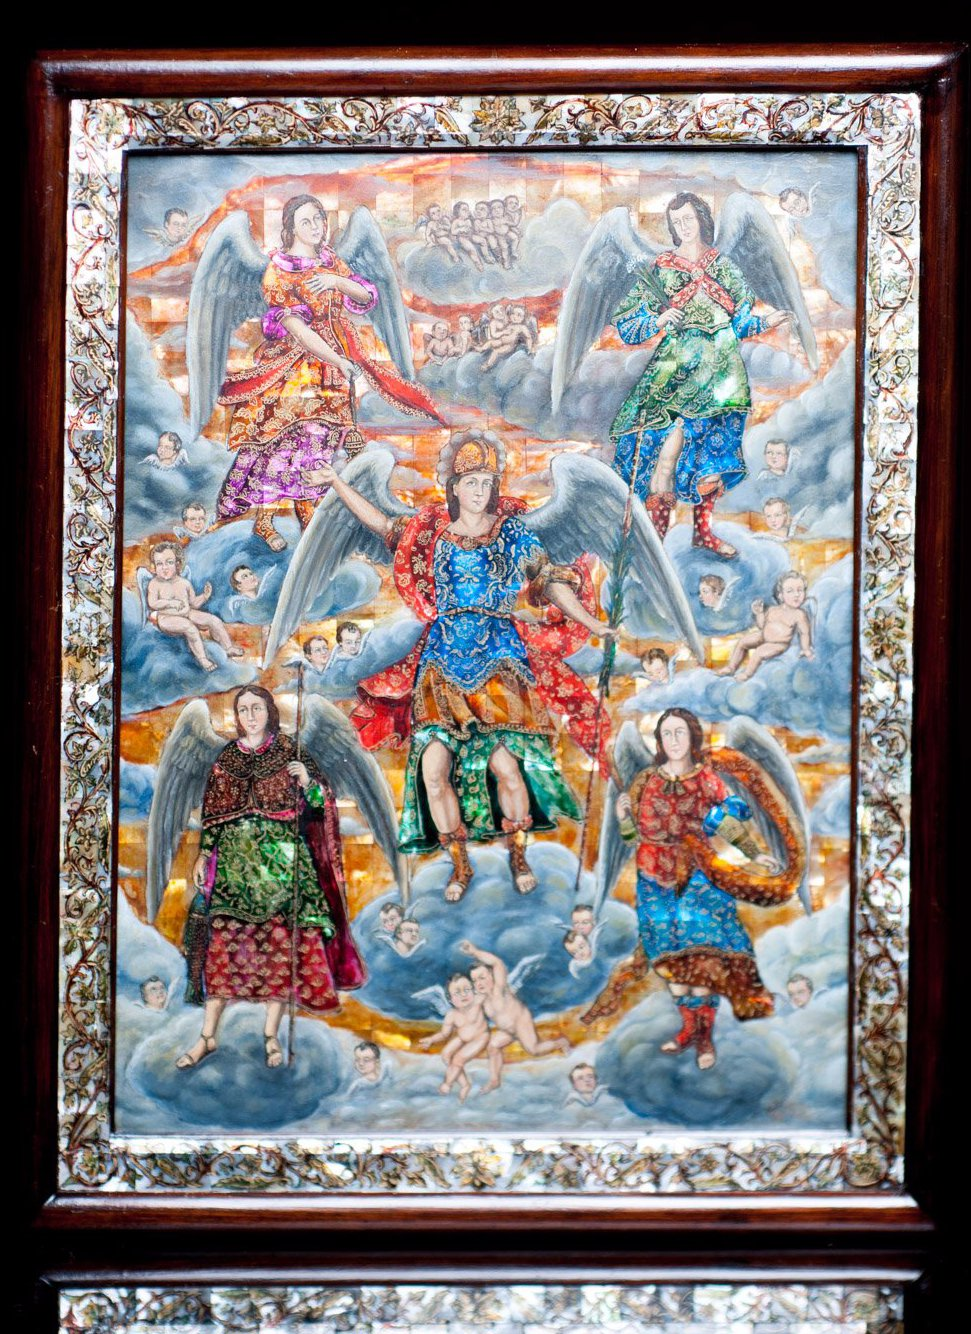 Archangels Painting Monter of Pearl Inlay Nacre Mexican Folk Art